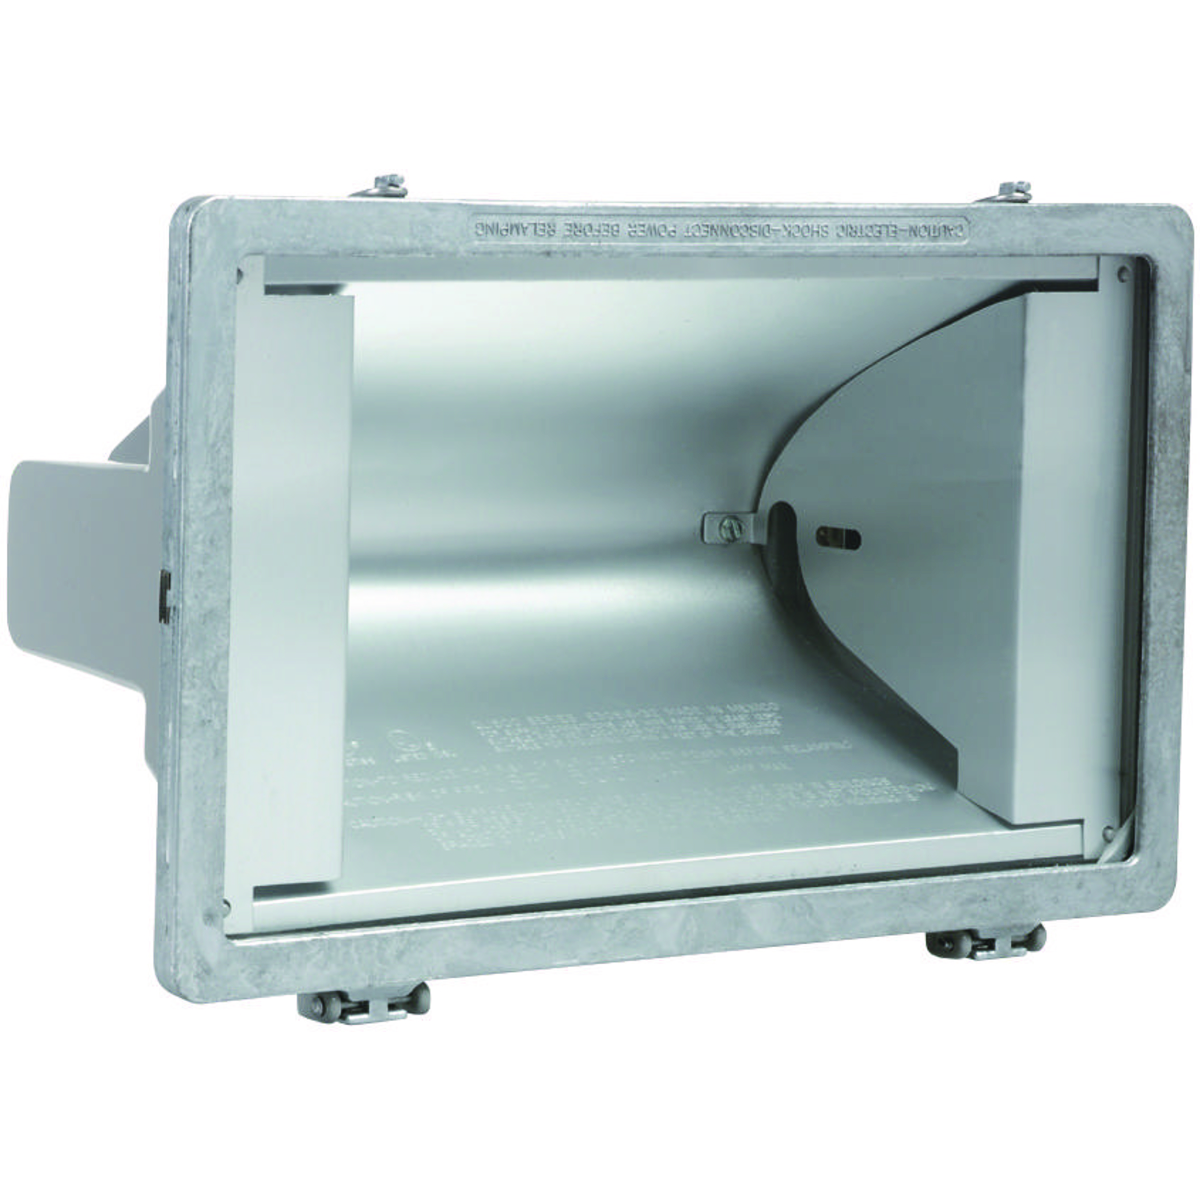 1500W QUARTZ FLOODLIGHT